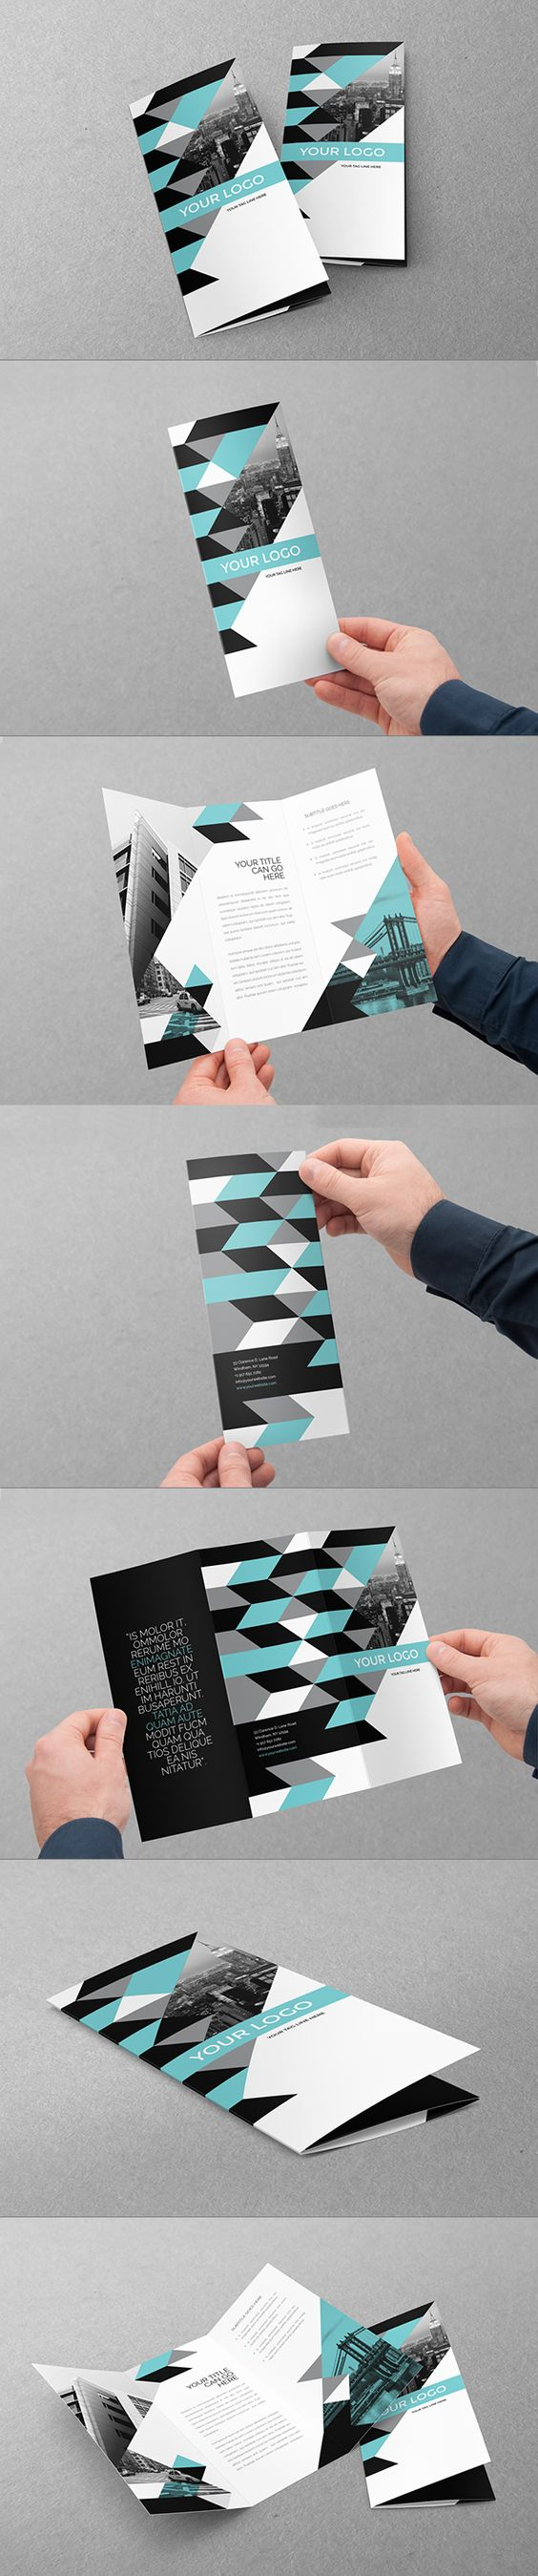 Clean Modern Business Trifold. Download here: http://graphicriver.net/item/clean-modern-business-trifold/11158783?ref=abradesign #trifold #brochure #design